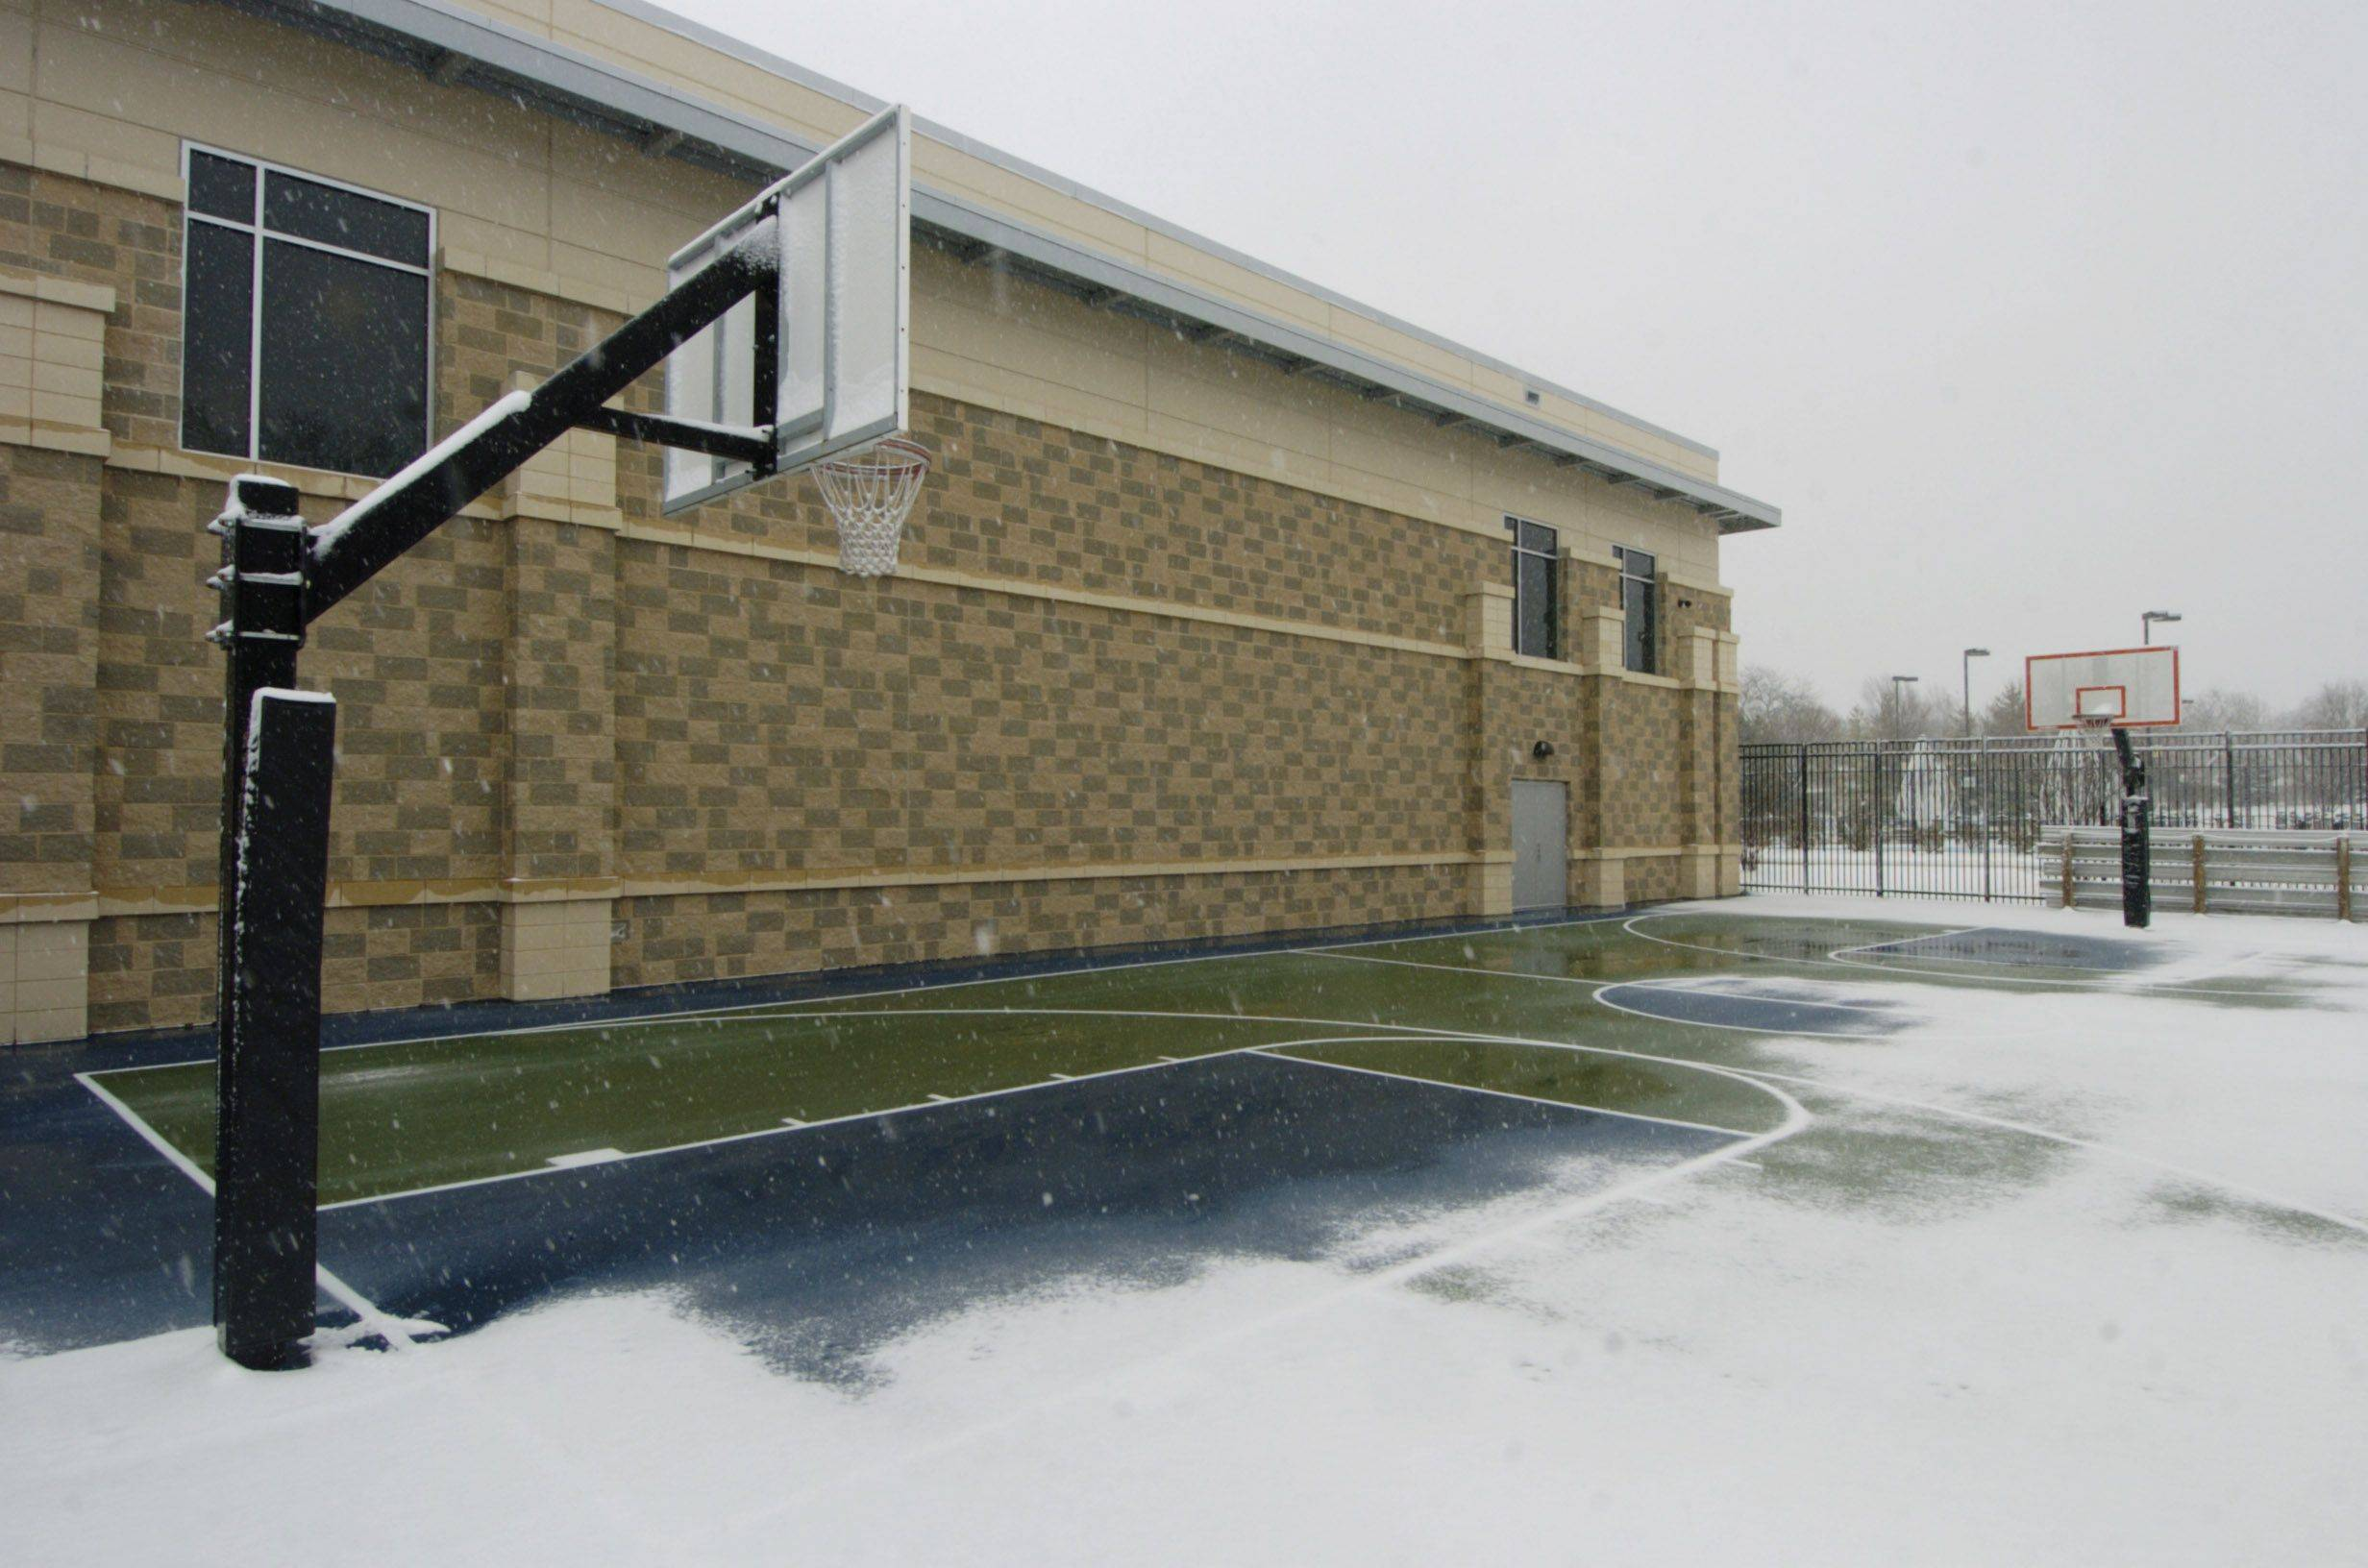 The basketball court at Pioneer Park is partially covered in snow Thursday afternoon. Youths were playing basketball on the court the previous day when the temperature reached 51 degrees.